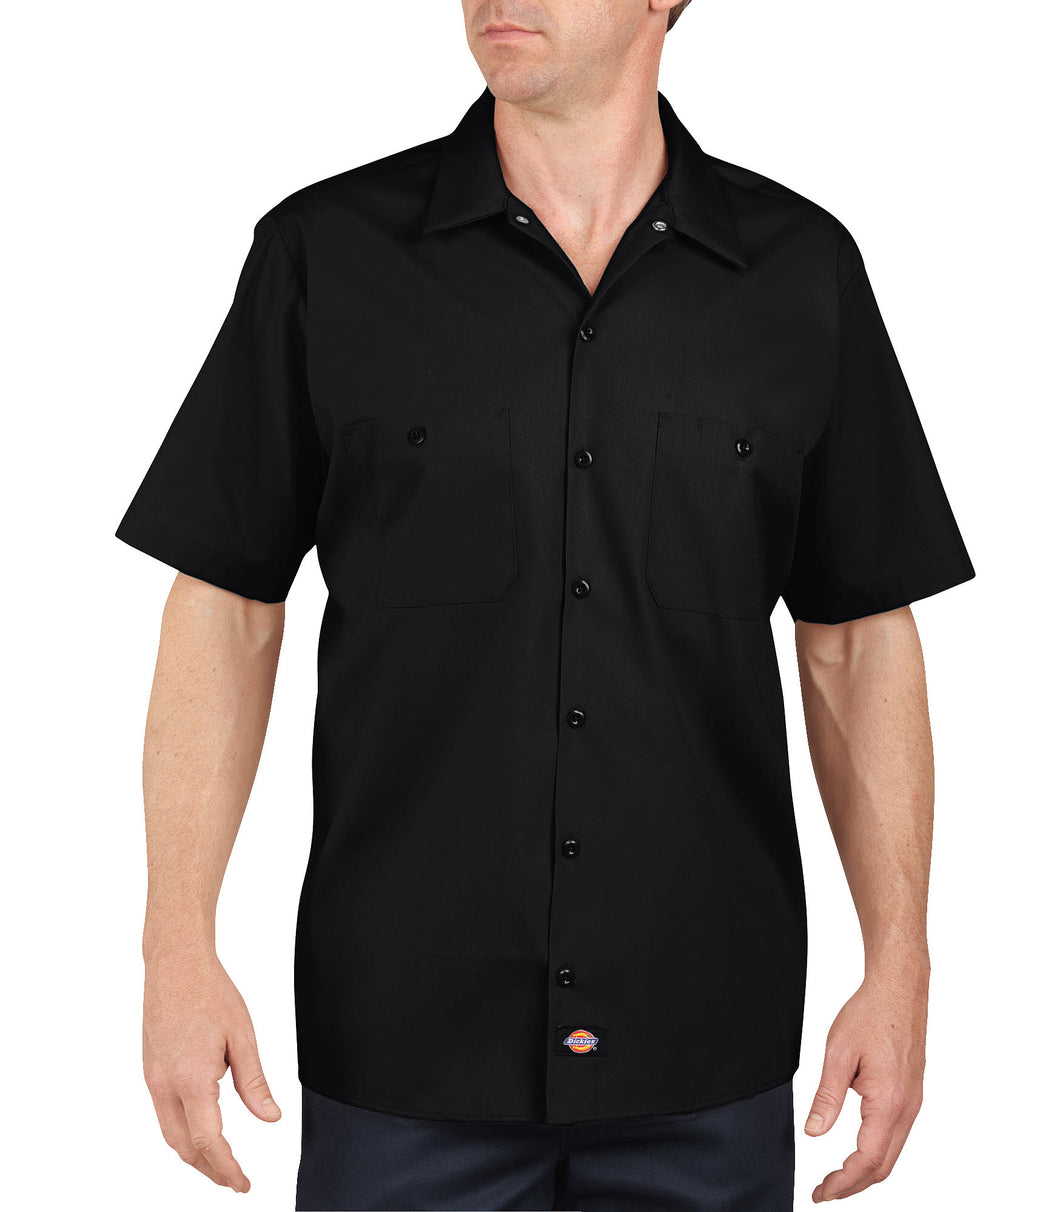 Dickies LS535 Industrial Short Sleeve Work Shirt